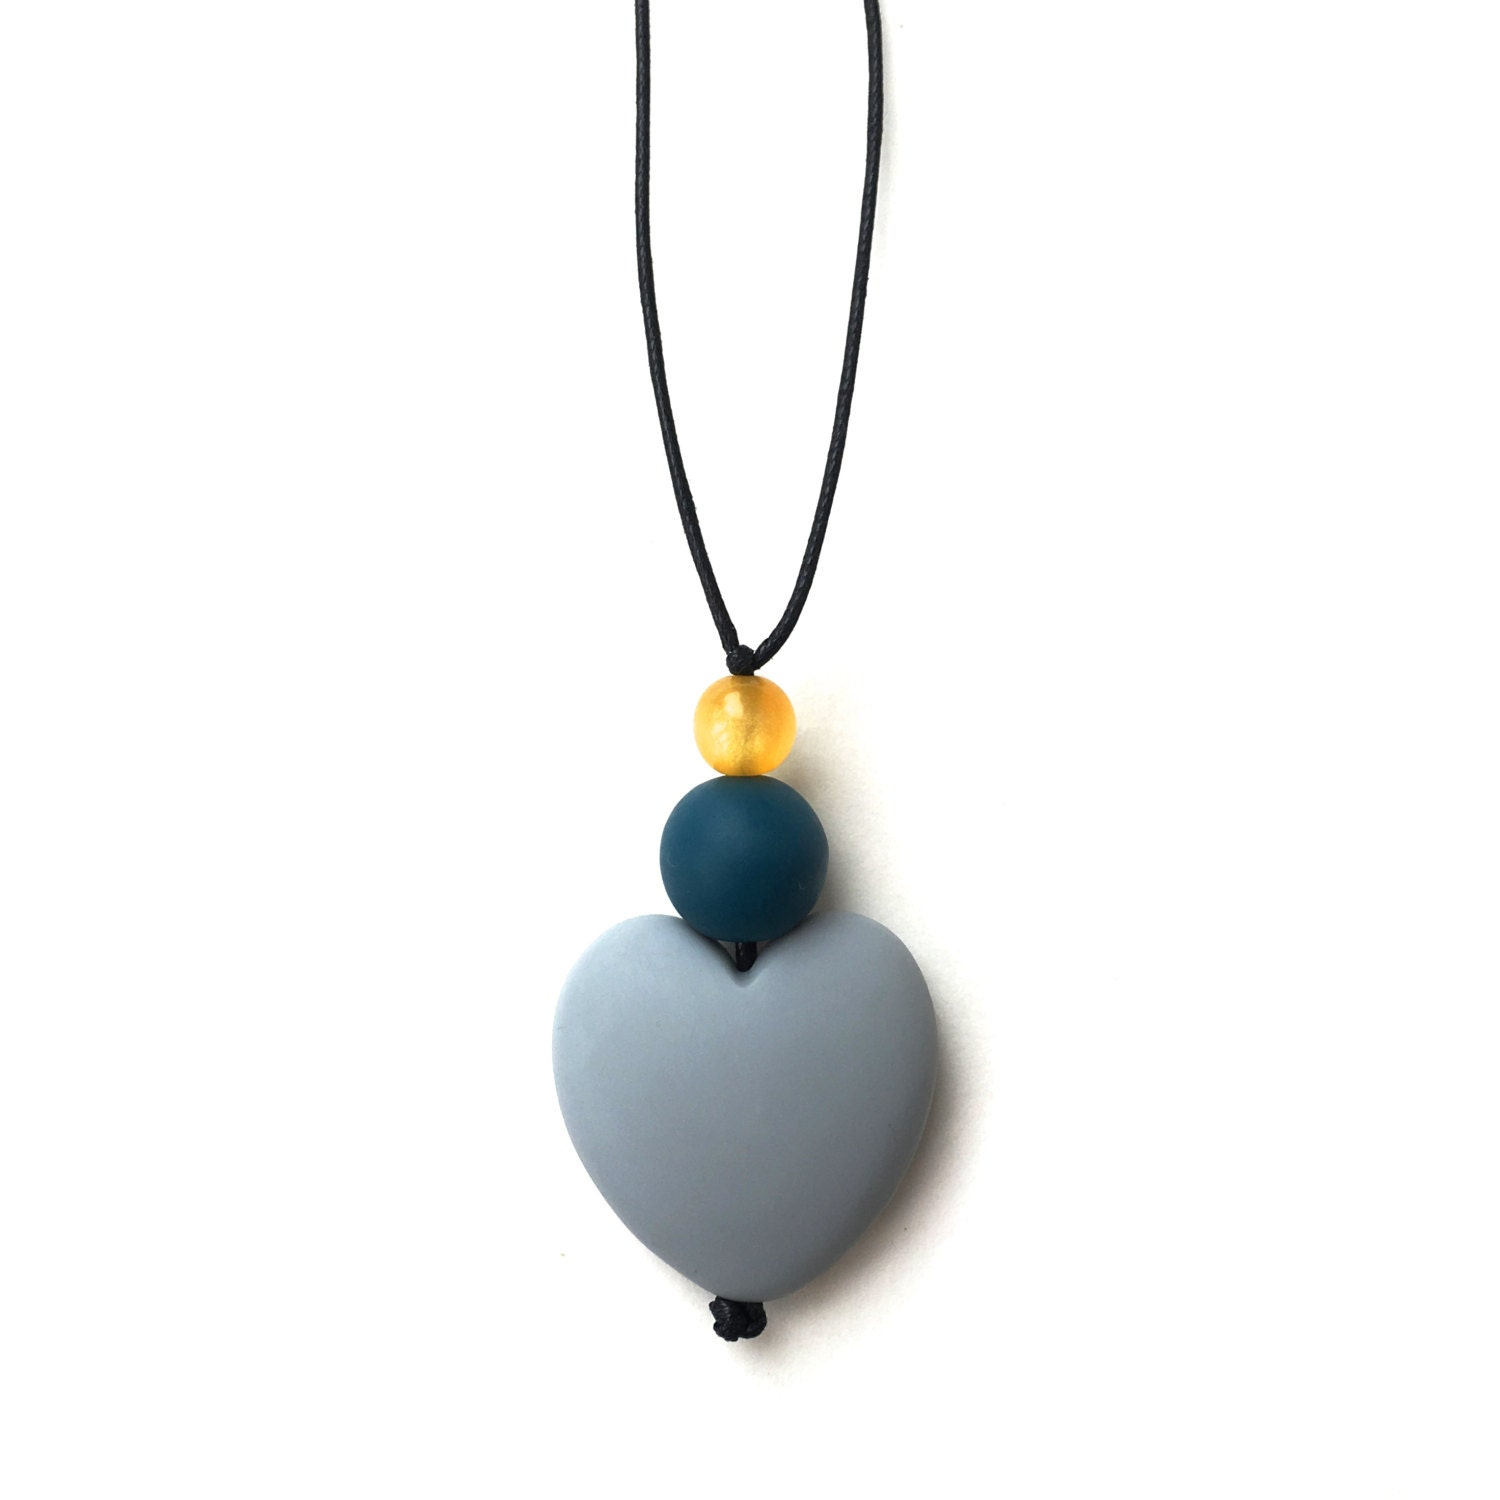 Breastfeeding Necklace  Nursing Necklace  Nursing Beads  Aphrodite Resin Heart  Grey Teal Yellow